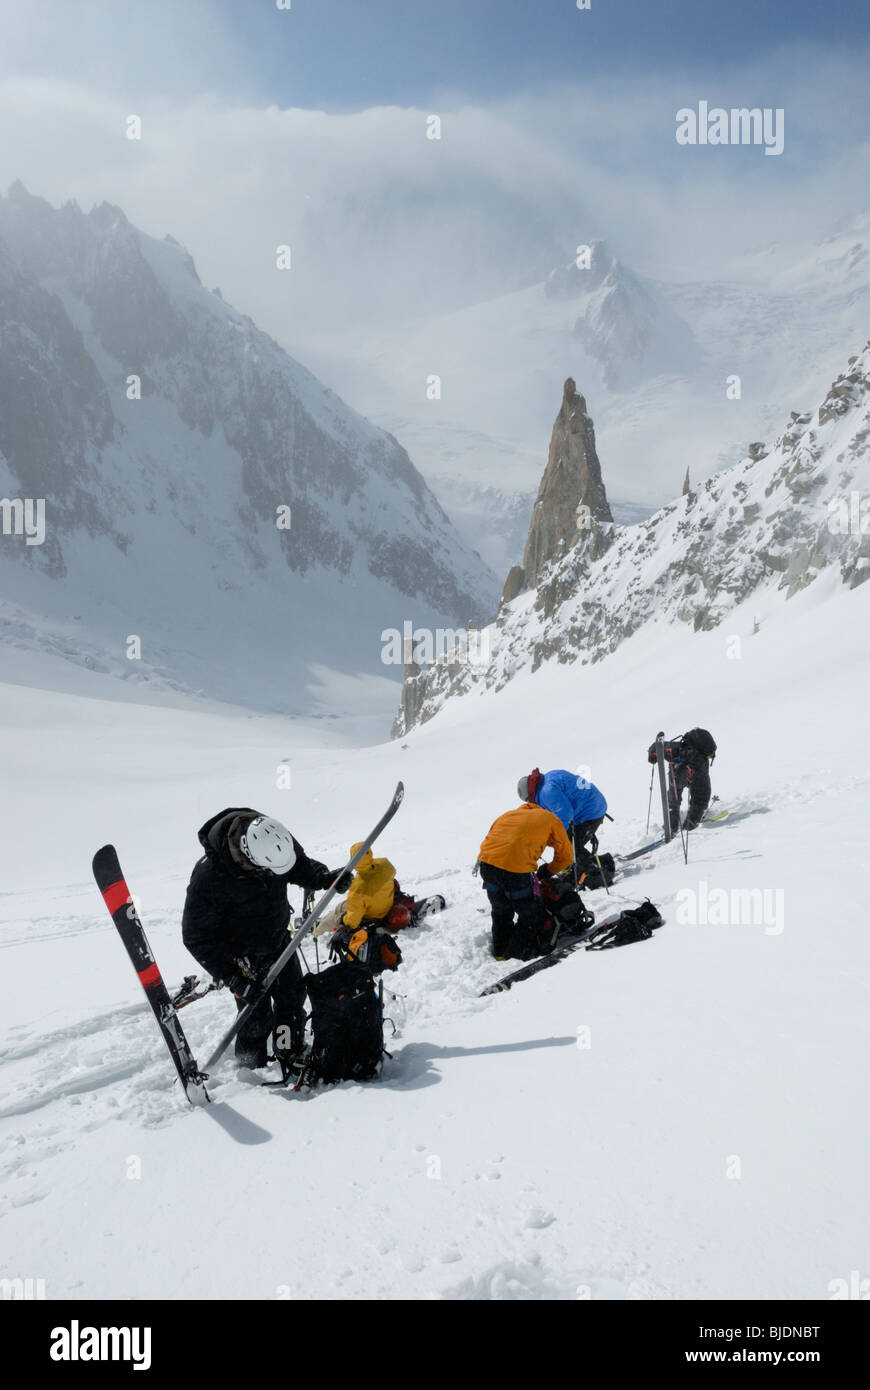 Group of skiers removing climbing skins and preparing for the descent. Mont Blanc massif and the Vallee Blanche - Stock Image